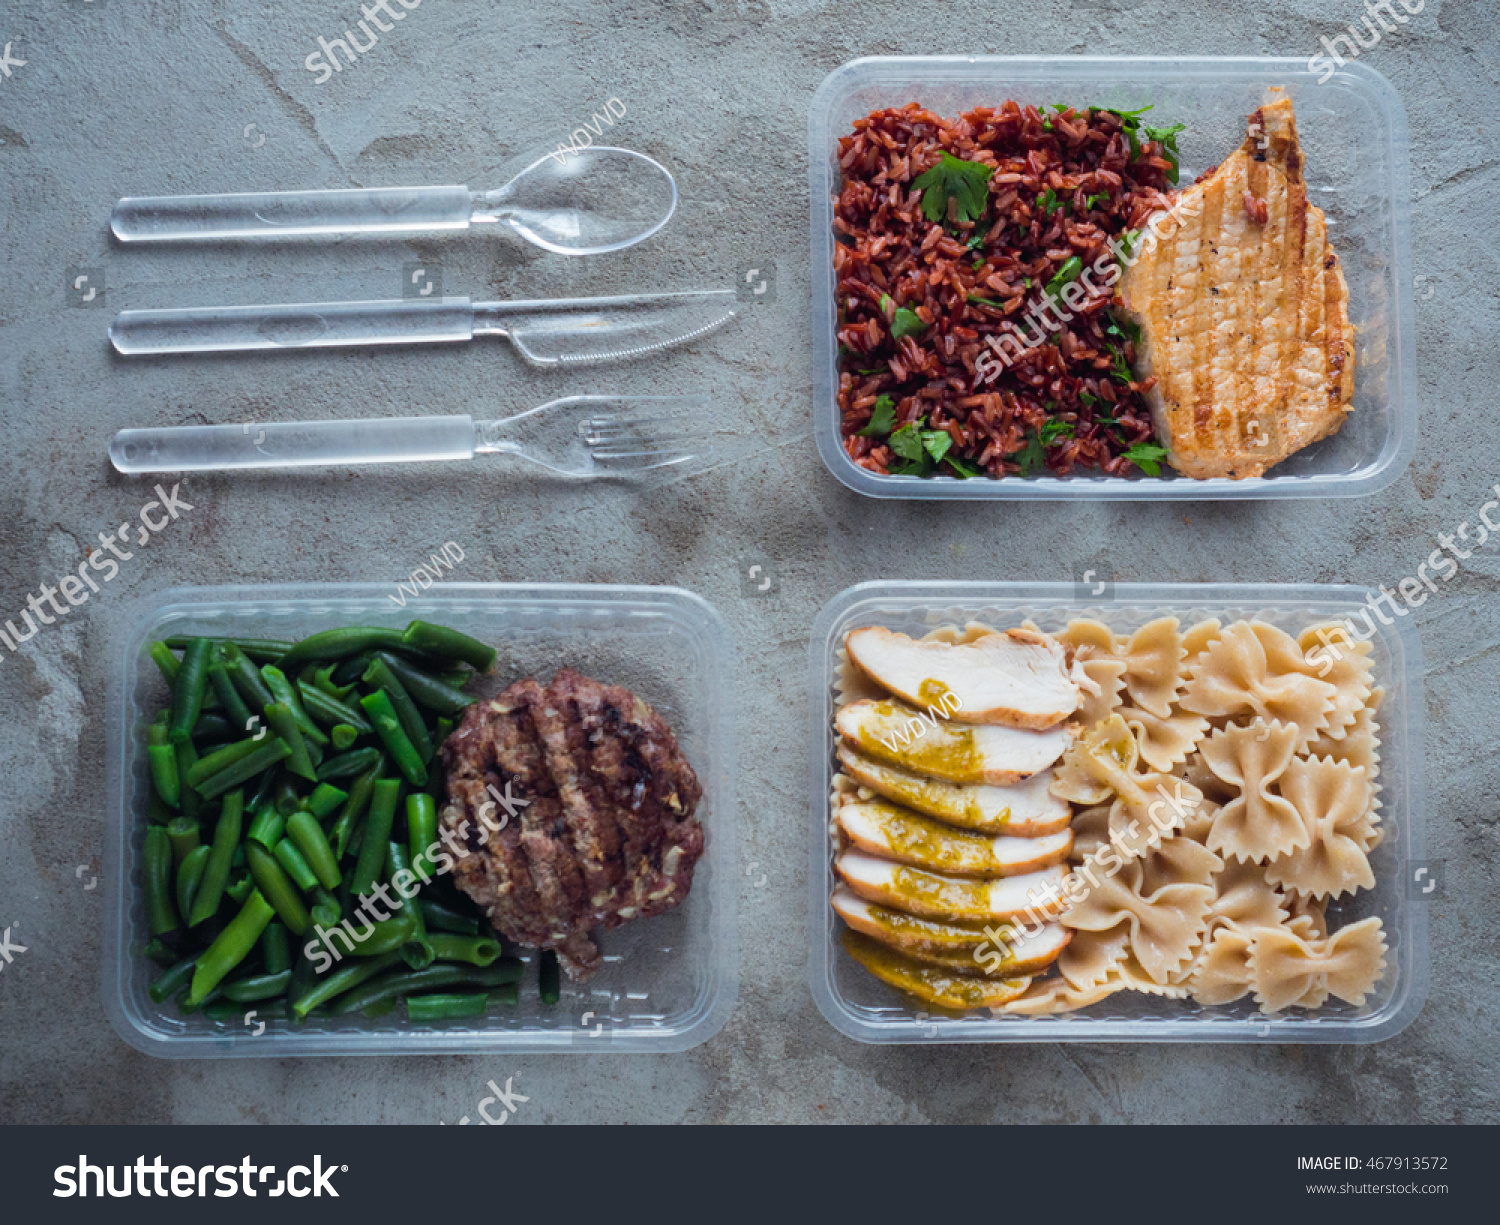 Lunch Delivery: How To Start A Lunch Delivery Service From Home